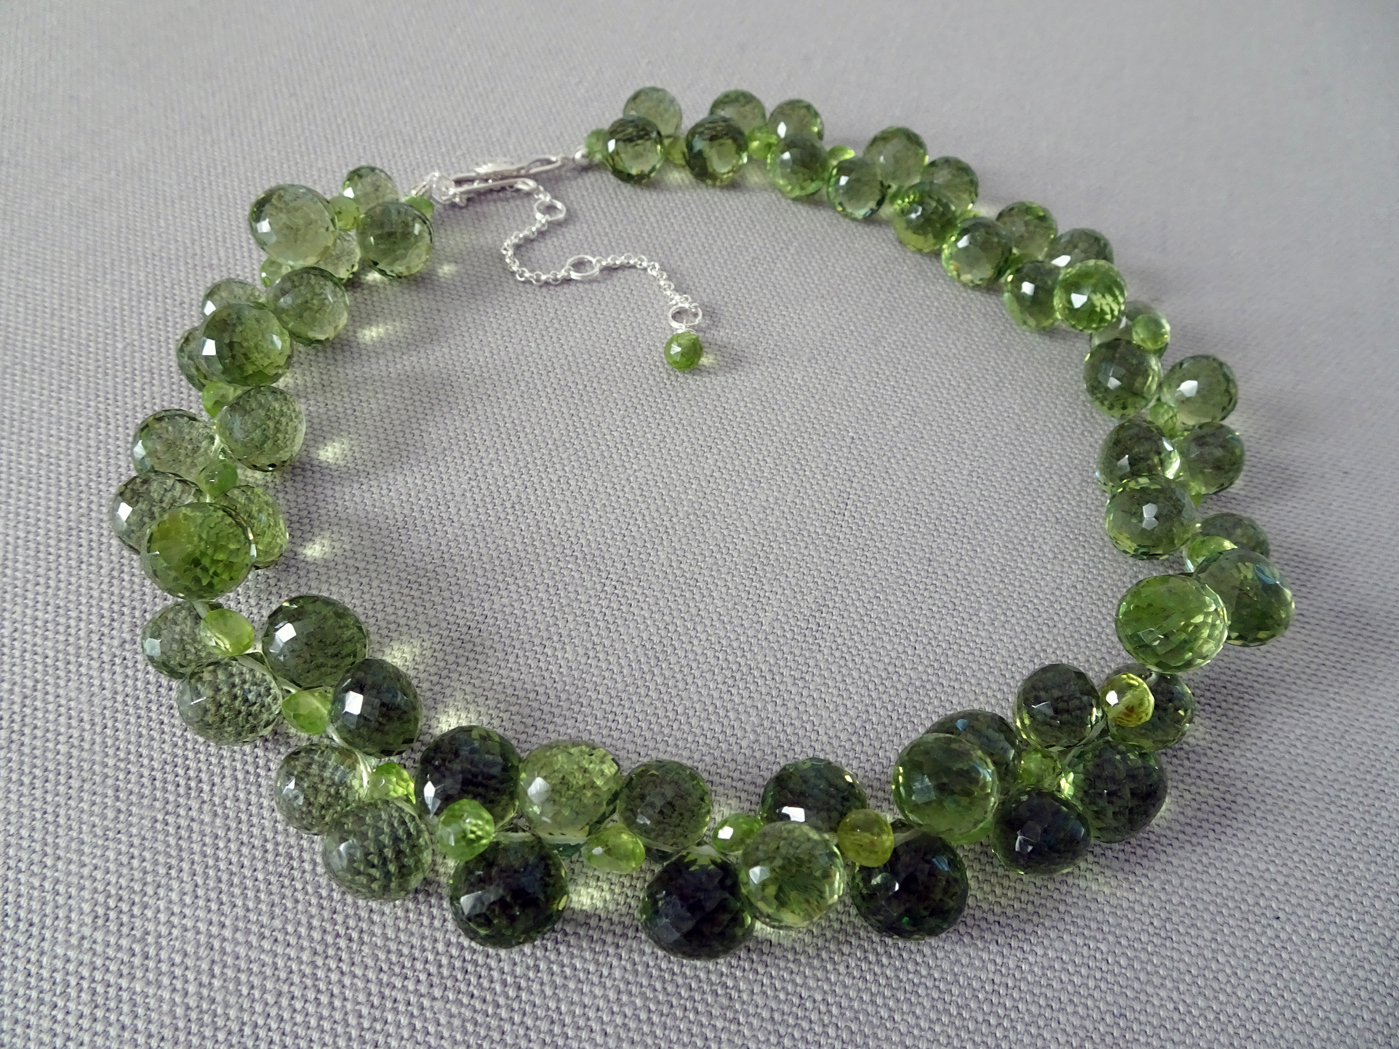 Green Olives   2019  Necklace & Earrings  Quartz, Peridot, Sterling Silver